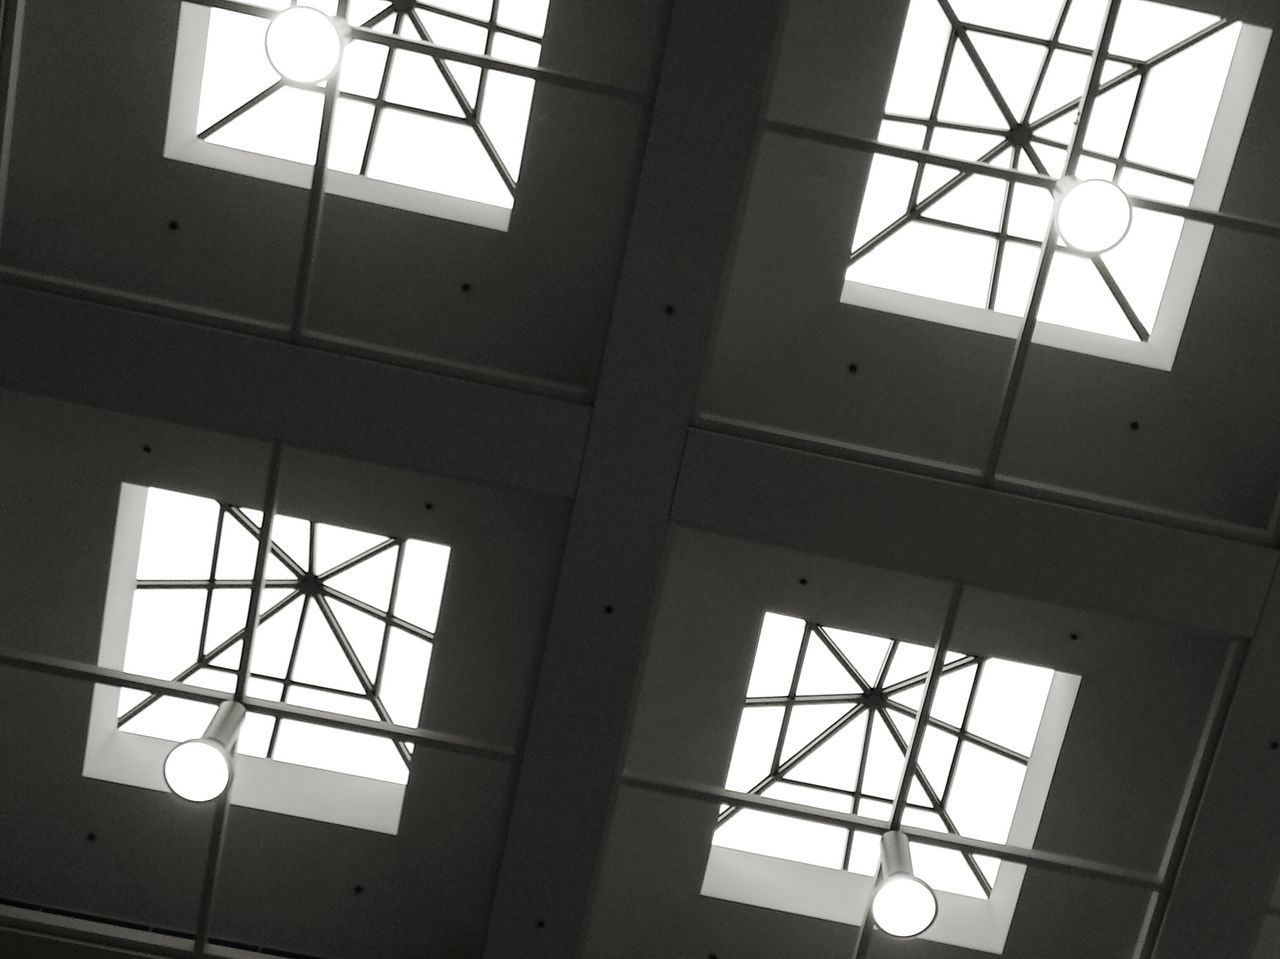 Four perspectives Indoors  Full Frame Day Built Structure No People Architecture Low Angle View Syracuse Ny Upstate Medical Center Healing Squares Light Windows Appointment Sky